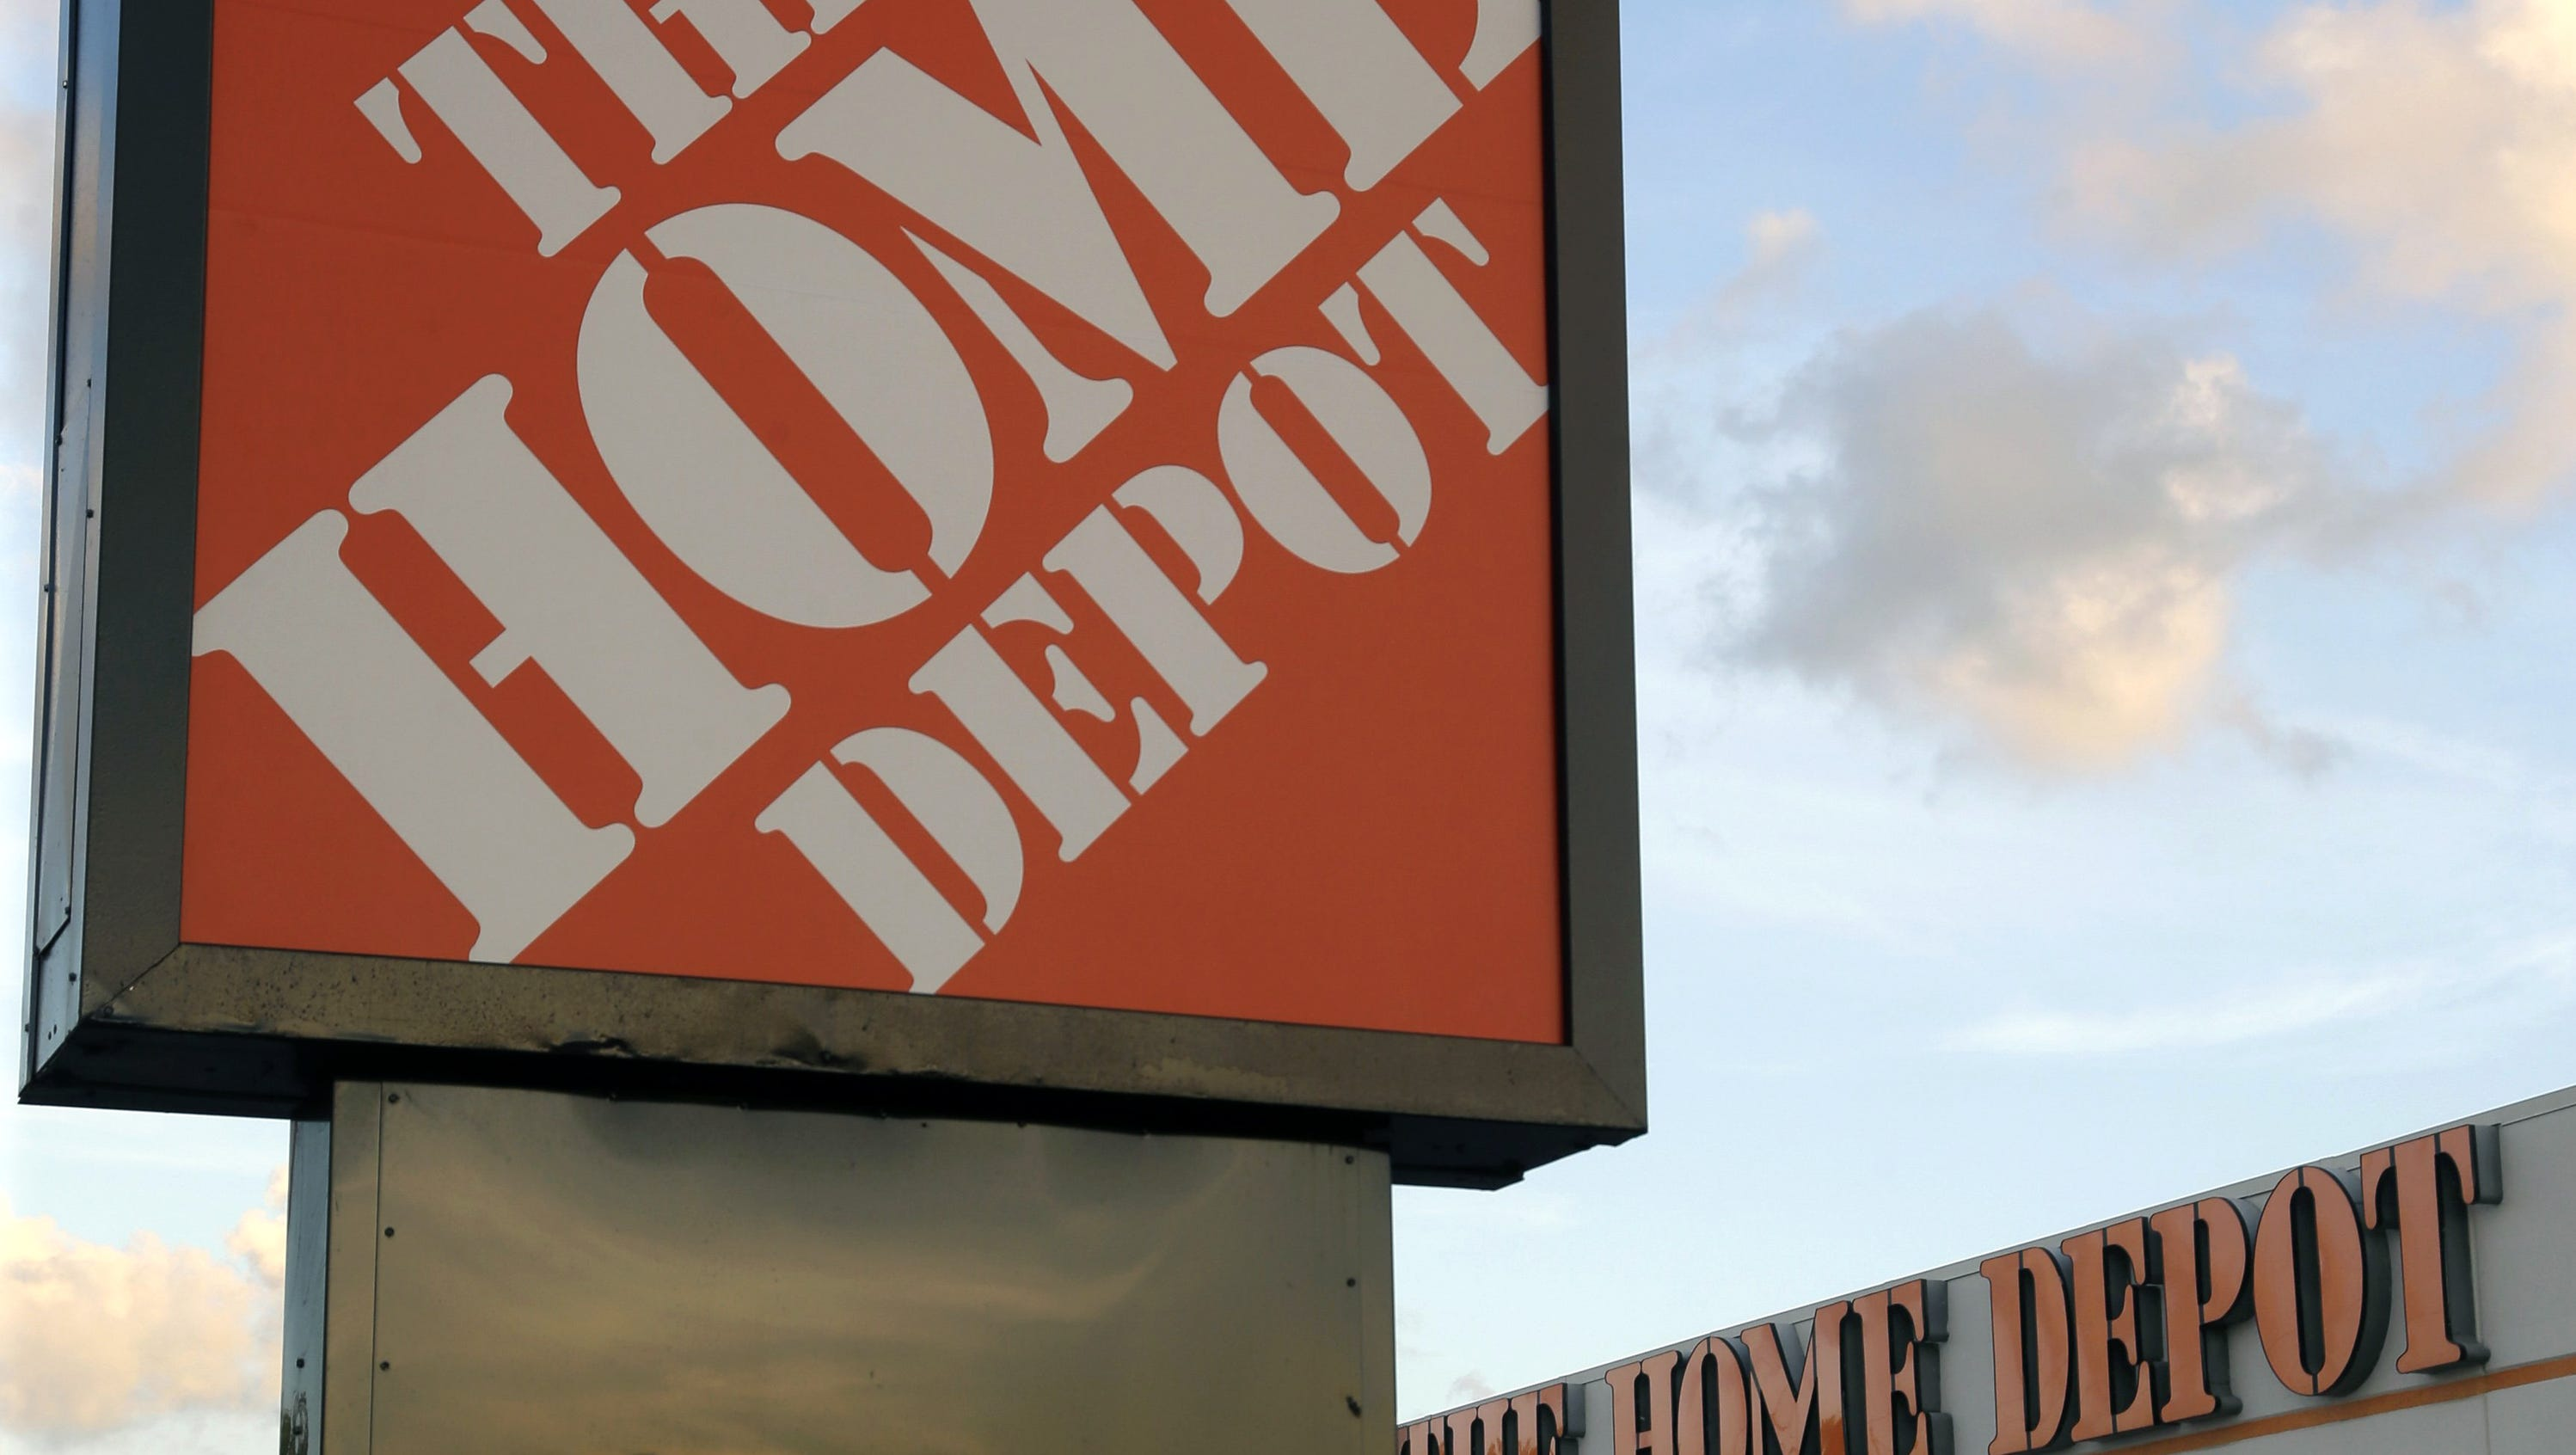 Man S Scam Turned Home Depot Thefts Into Gift Cards